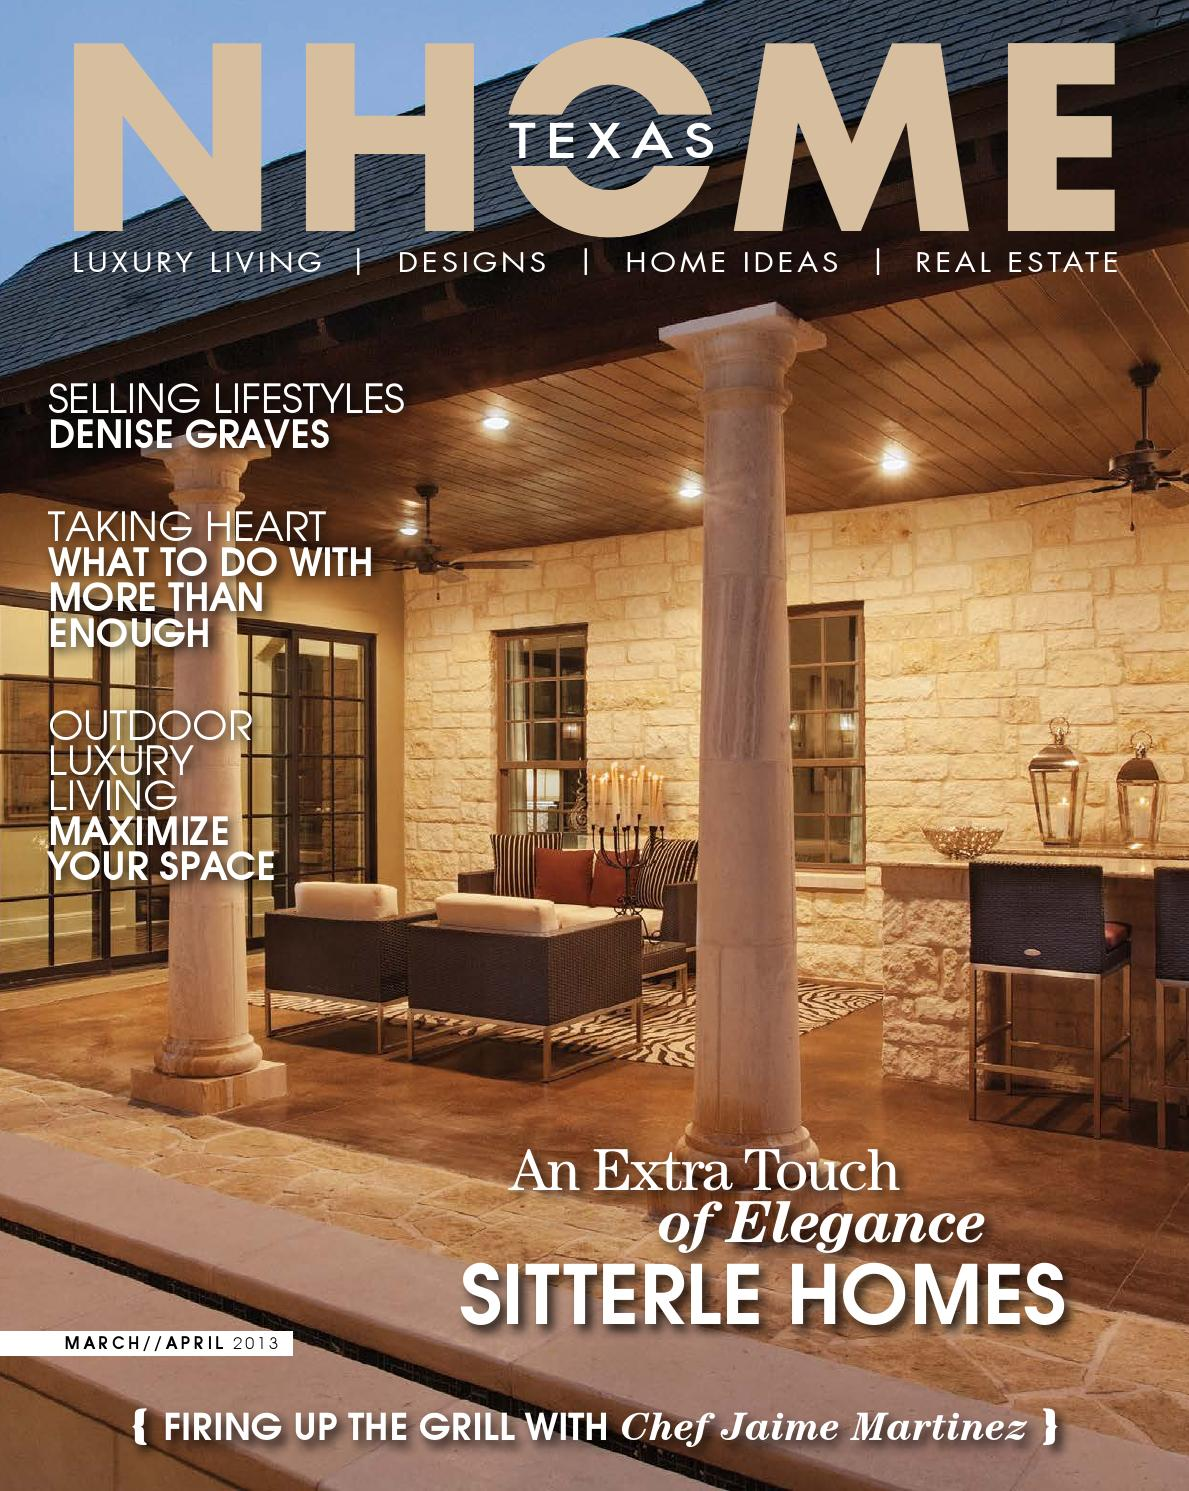 NHOME Texas Magazine Mar/April 2013 by NHOME Texas - issuu